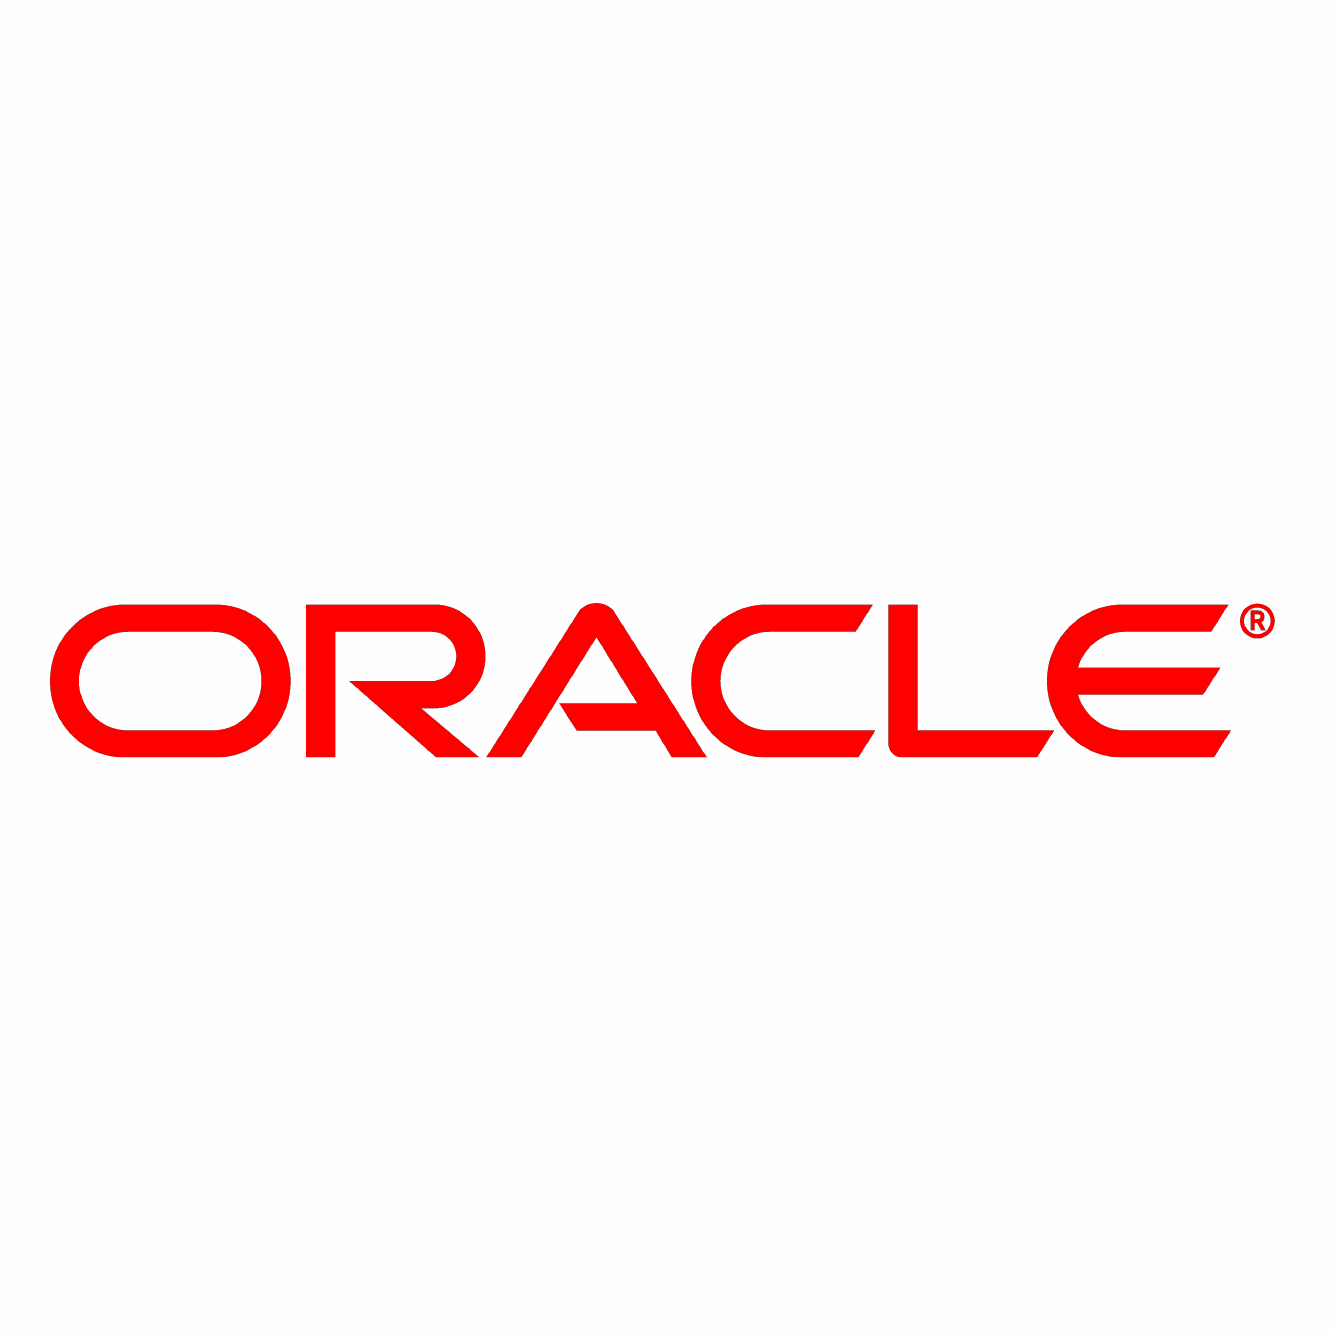 https://www.securetech.ae/wp-content/uploads/2019/02/19.ORACLE.png